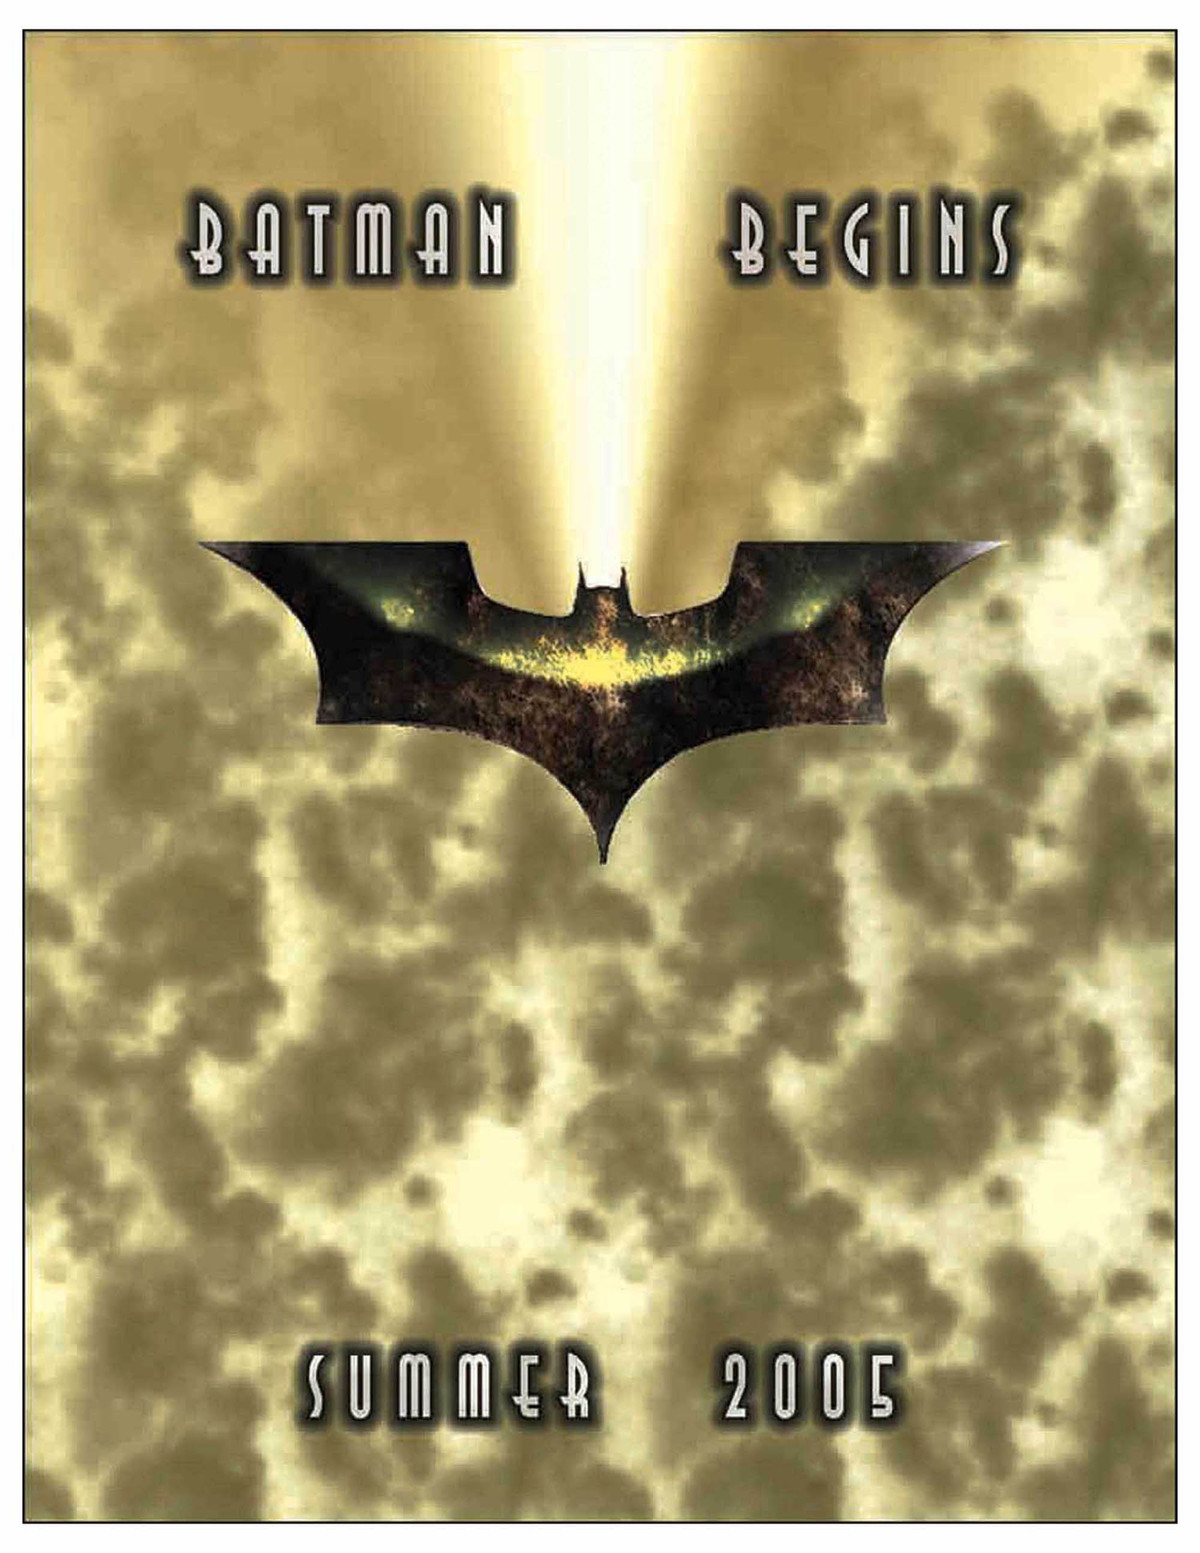 This piece is a movie poster for Batman Begins.